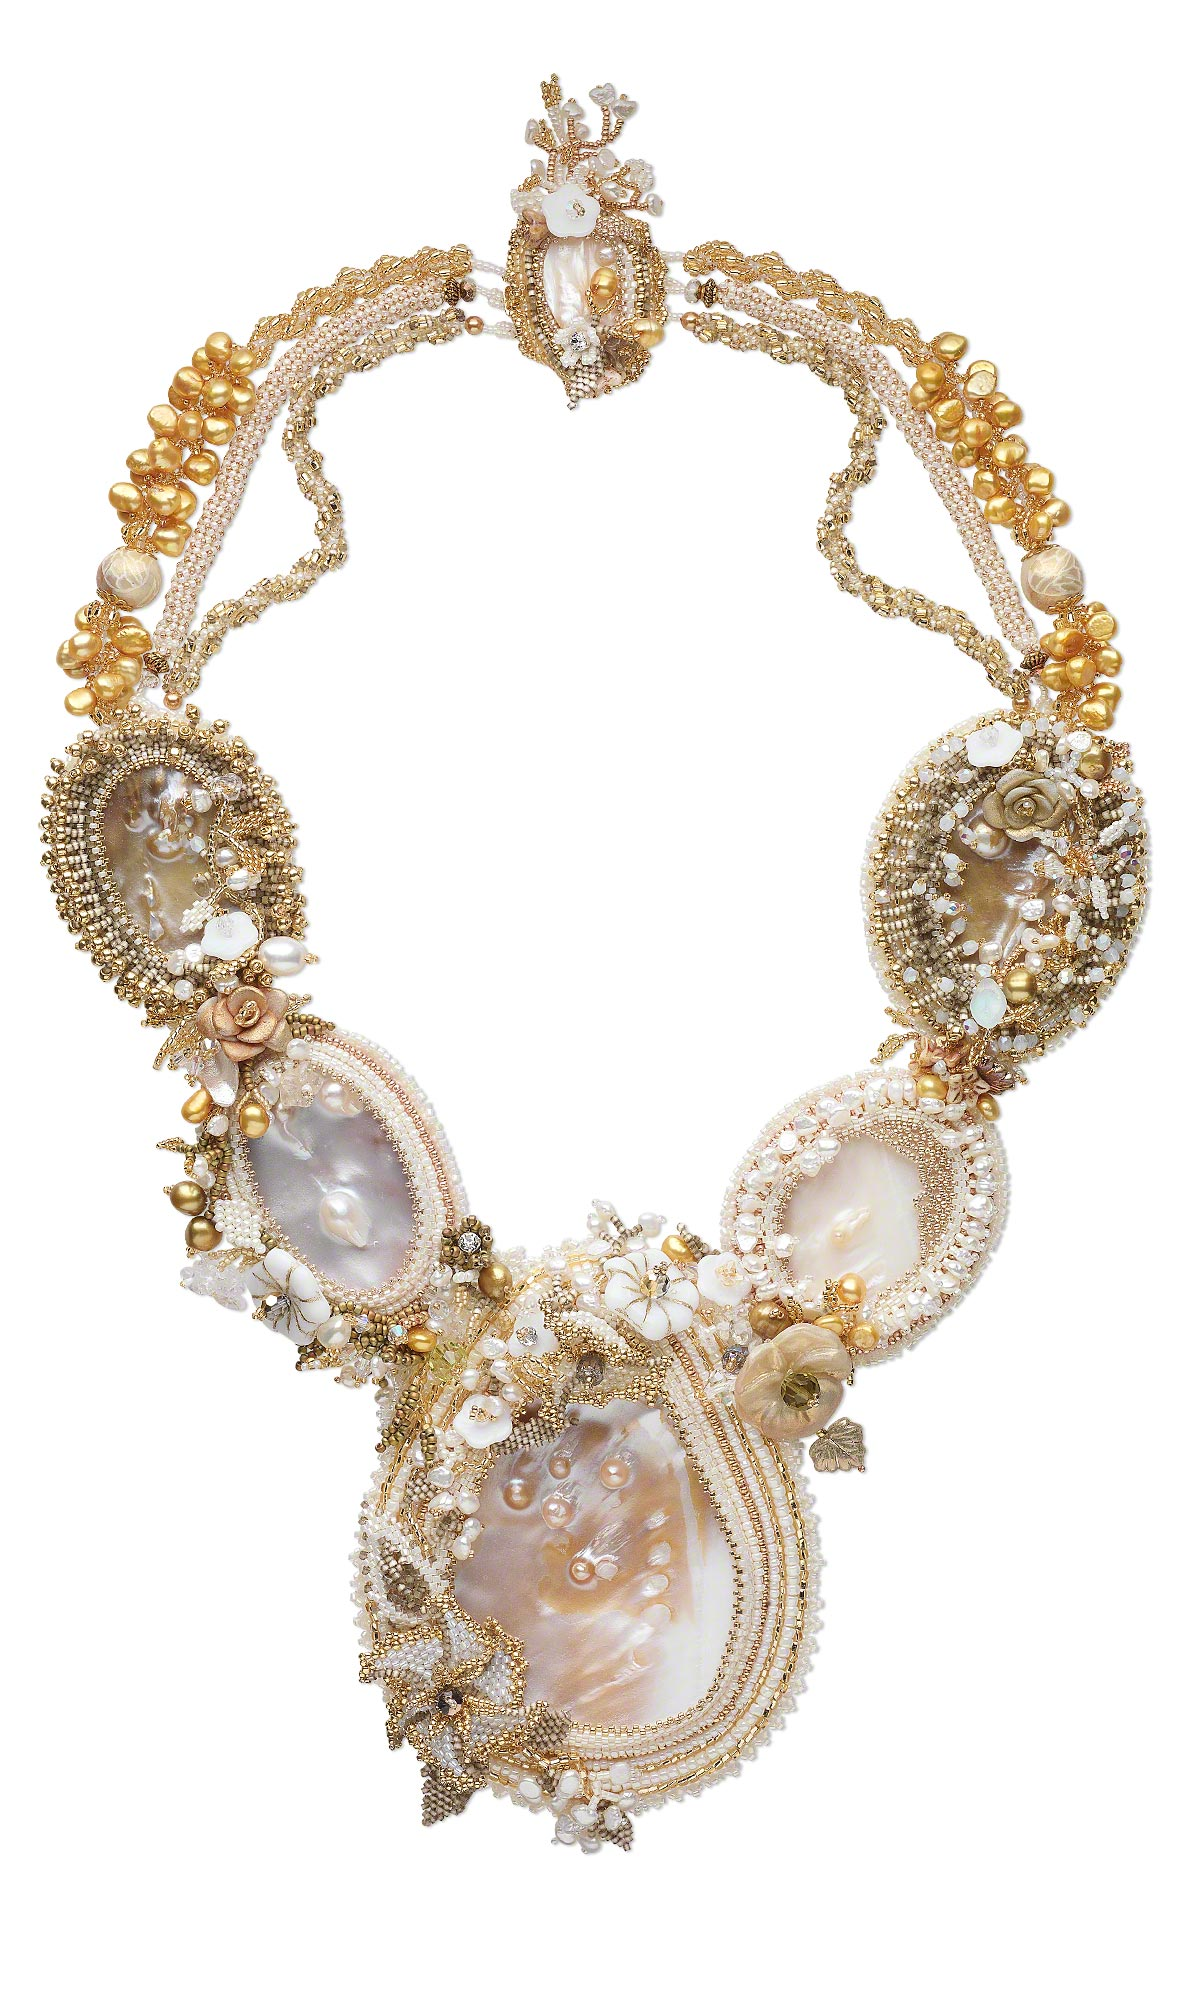 Jewelry Design Bib Style Necklace With Mother Of Pearl